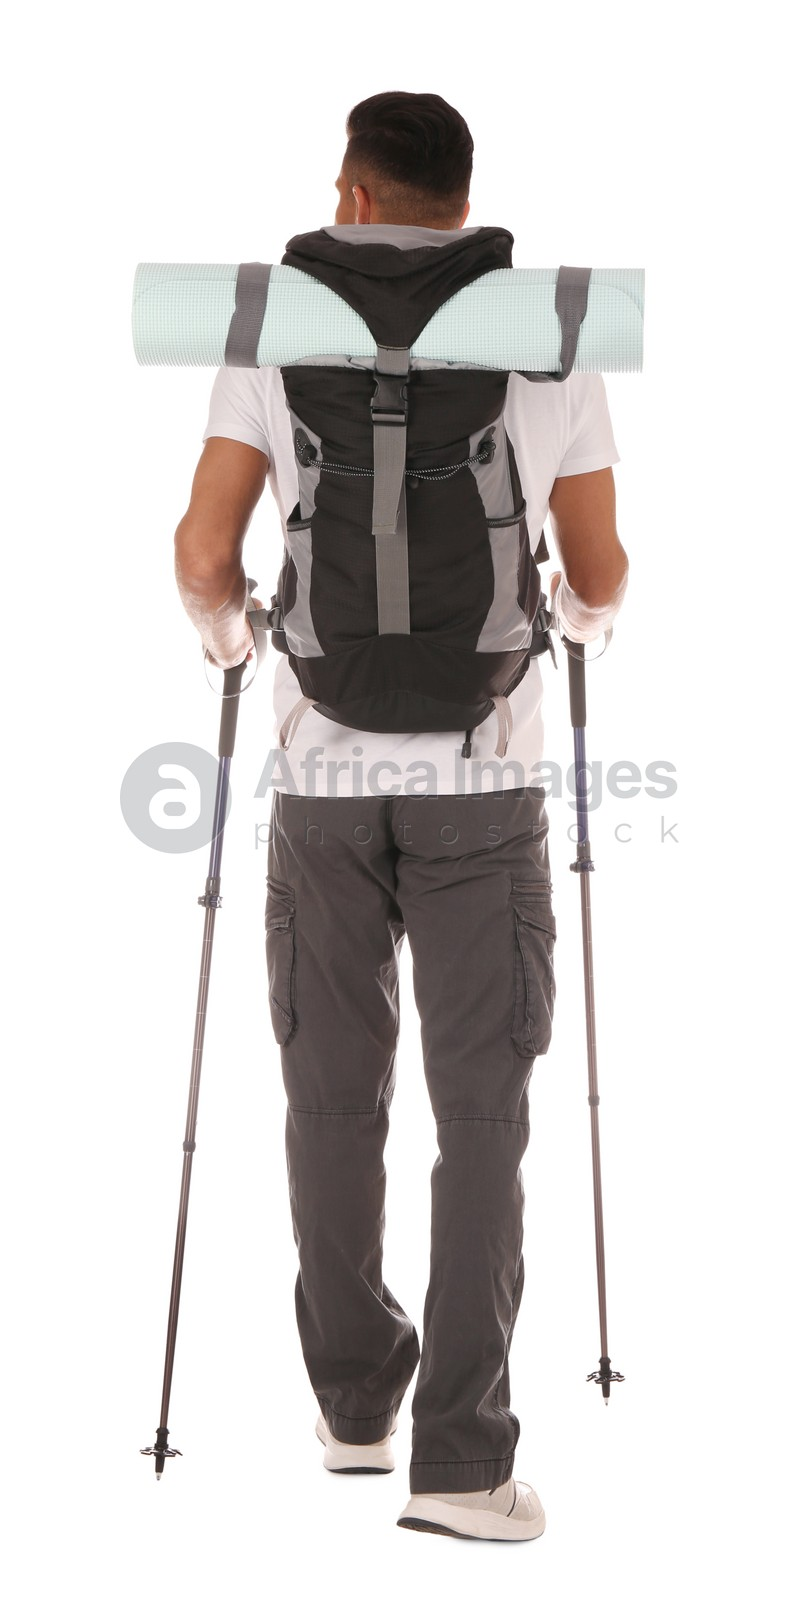 Male hiker with backpack and trekking poles on white background, back view